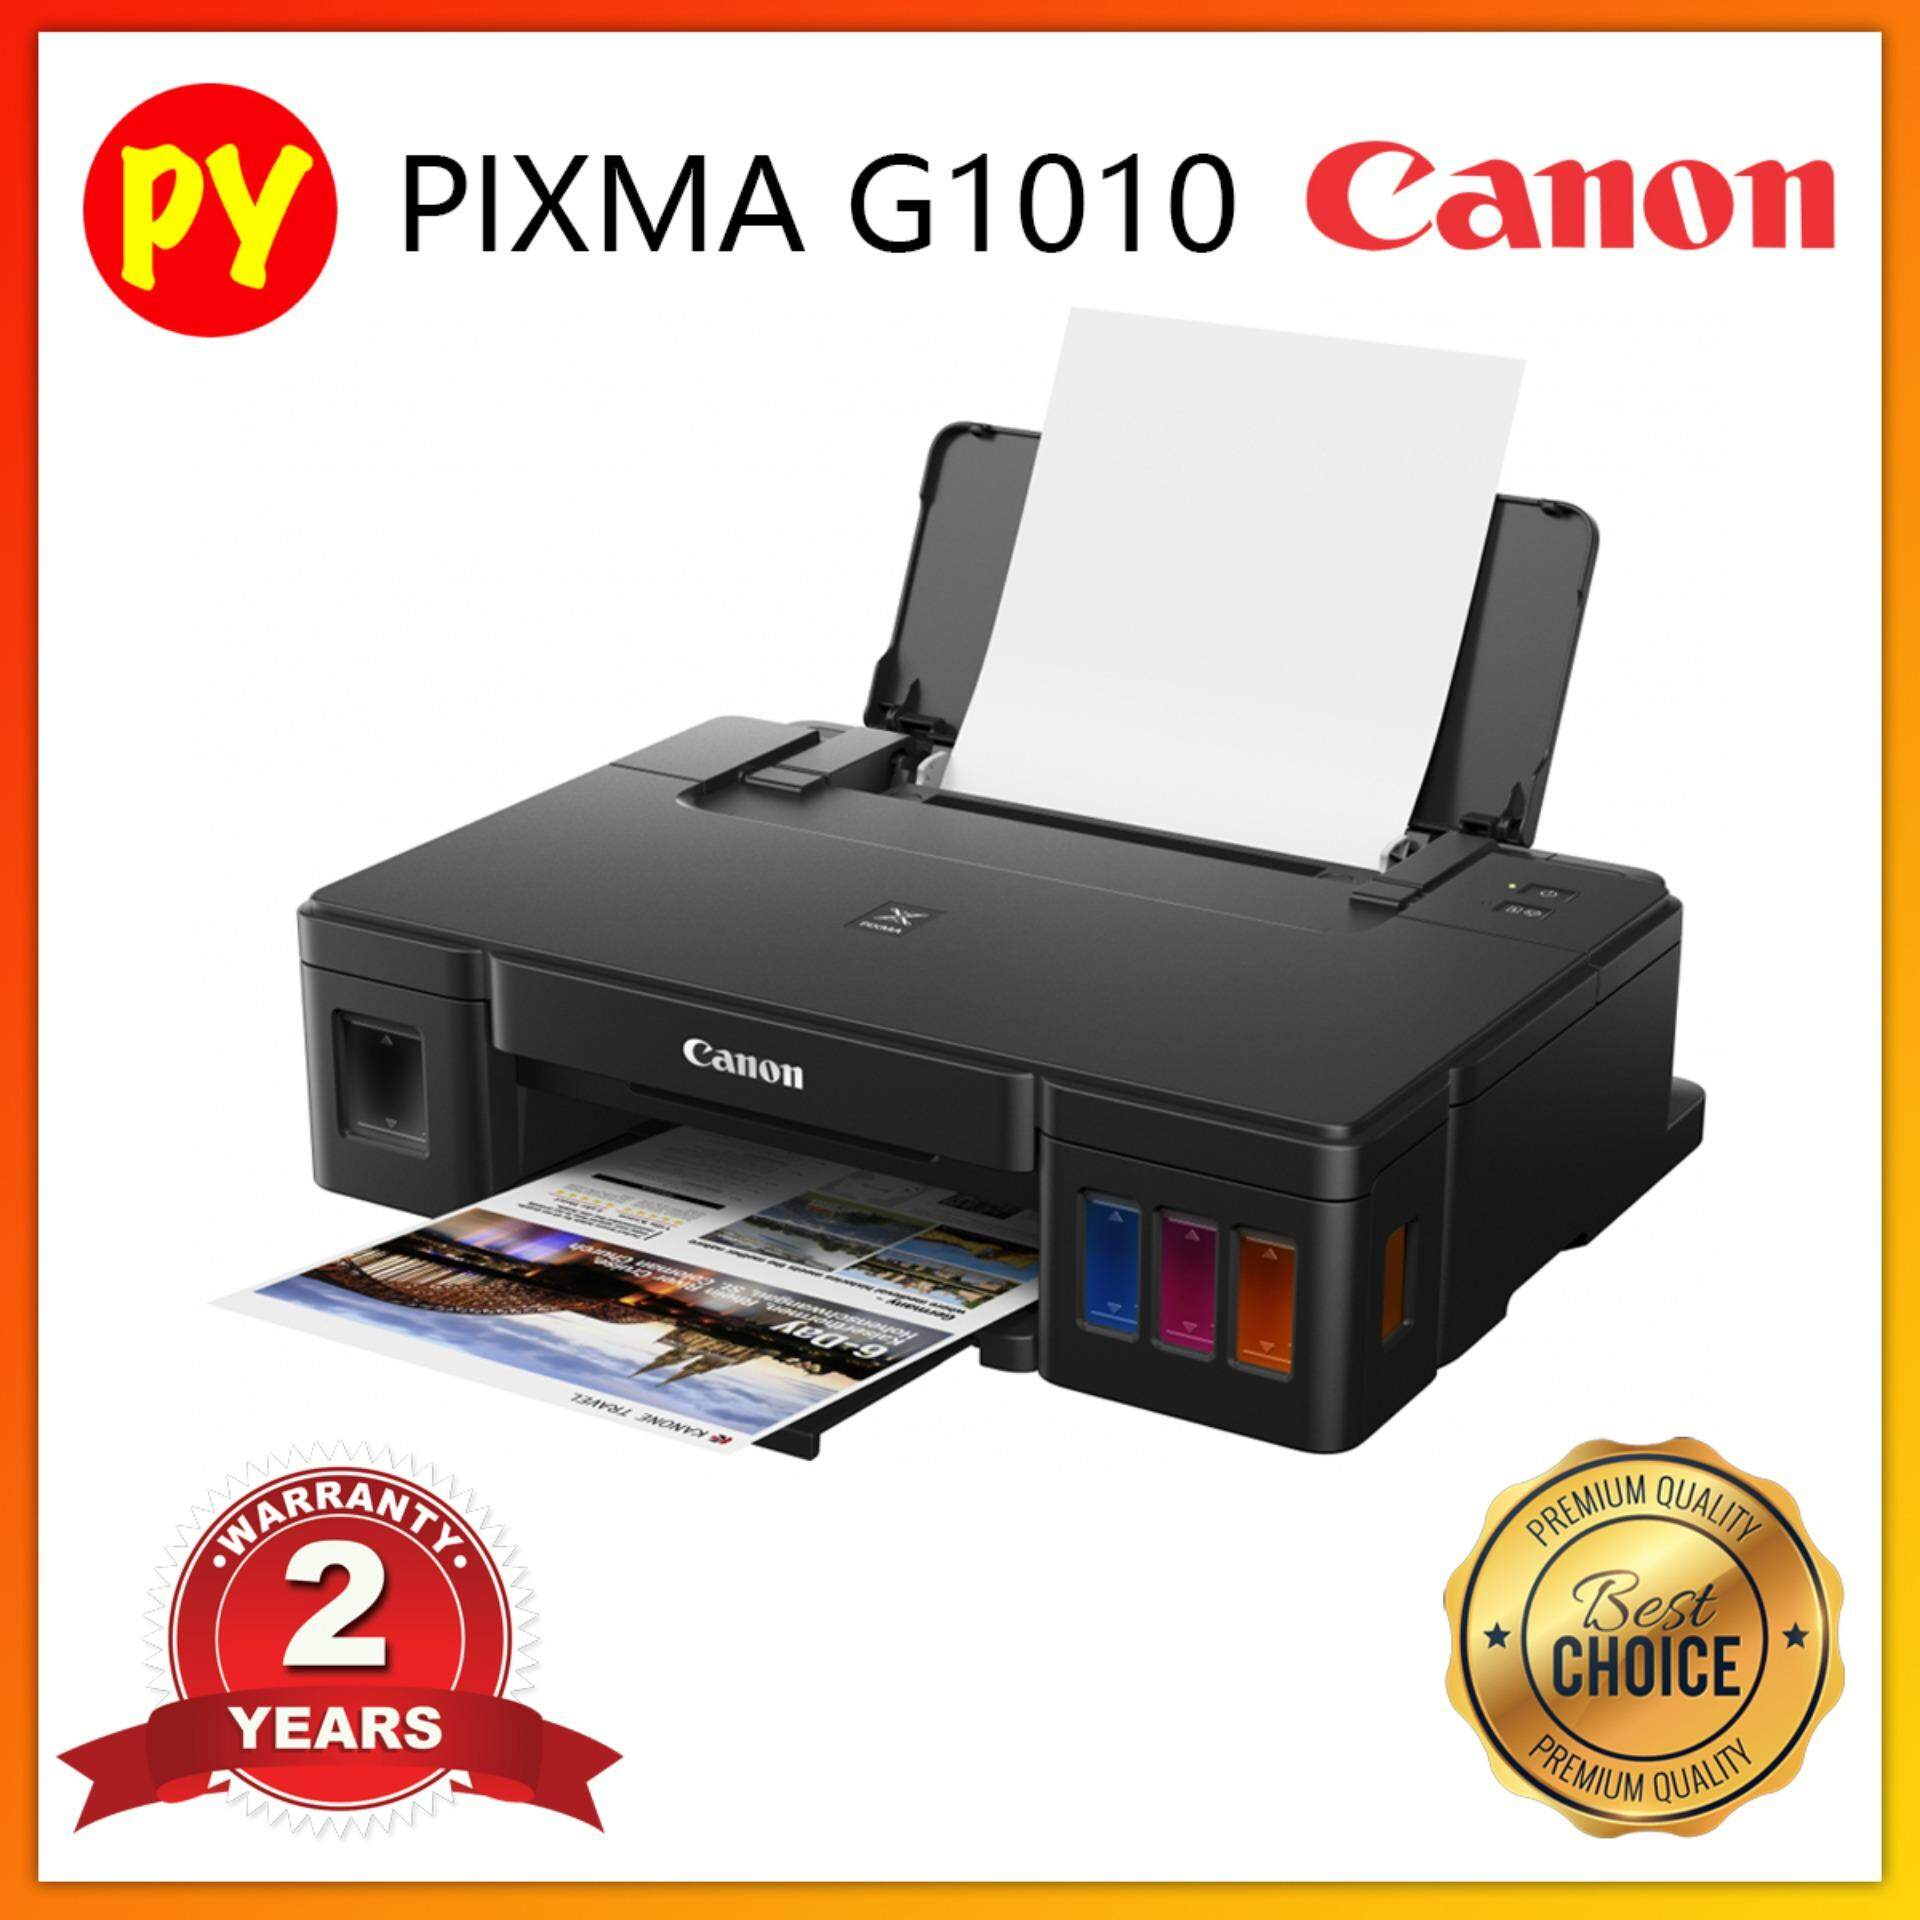 Sell Canon Combi Refill Cheapest Best Quality My Store Tinta 790 Cyan Ori For Printer G1000 G2000 G3000 Pixma Refillable Ink Tank Printermyr389 Myr 389